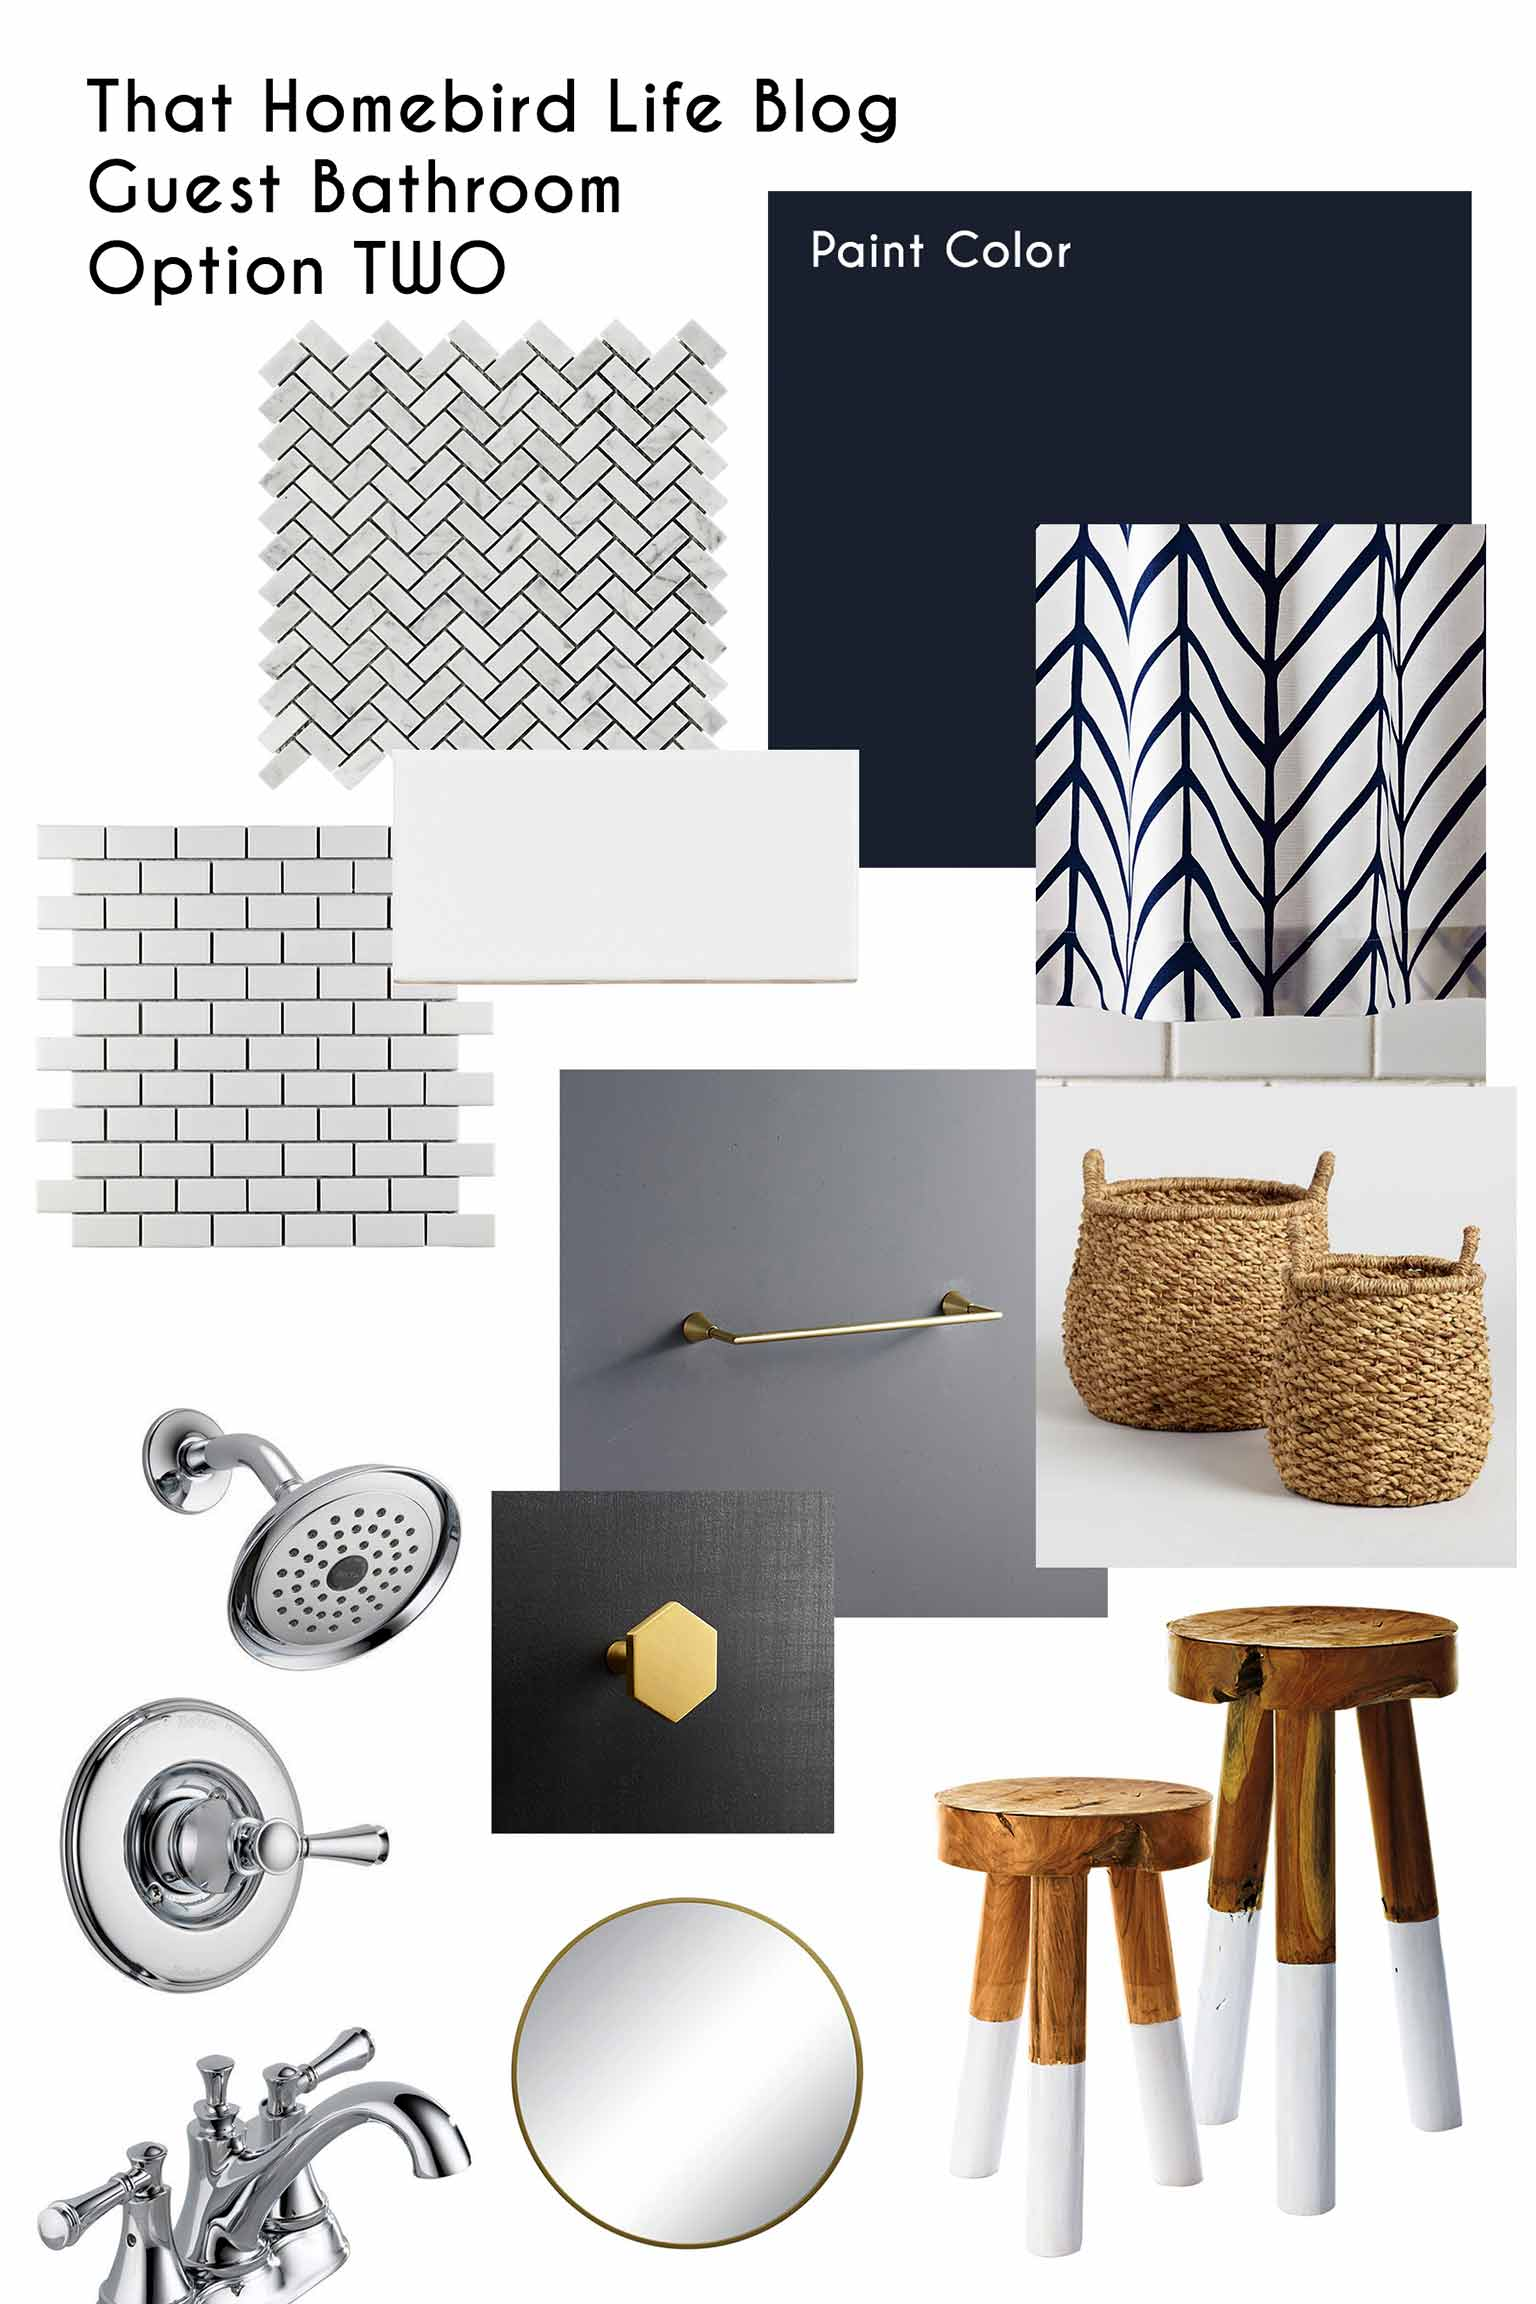 Bathroom mood board including marble herringbone tile, white subway tile, brass hardware and chrome shower head and faucet - That Homebird Life Blog